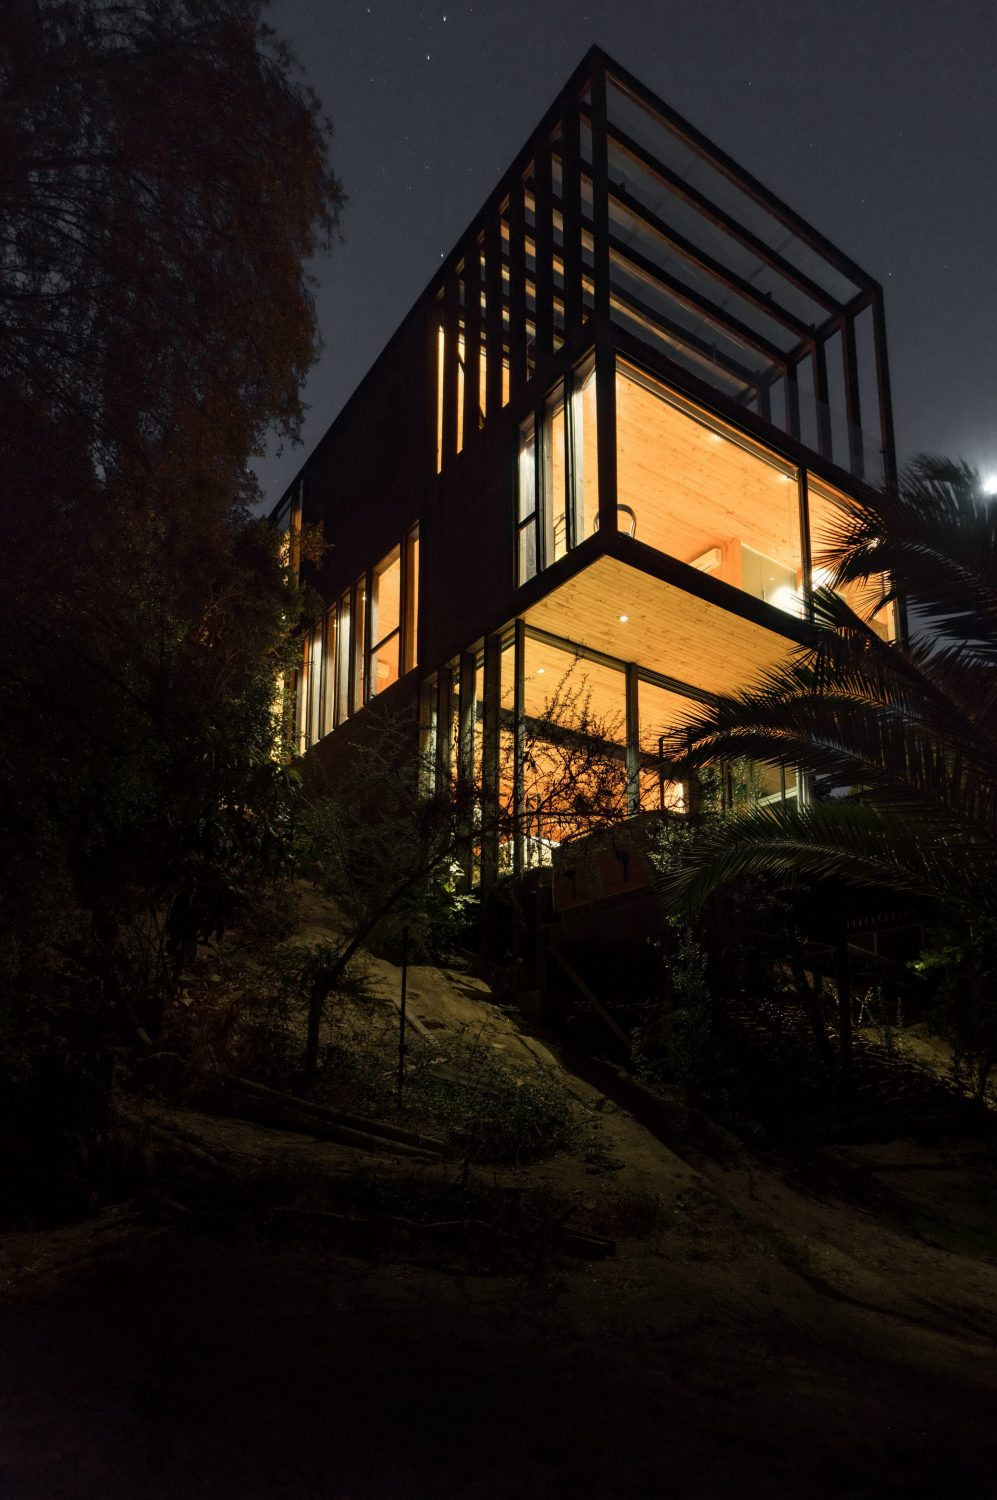 Slope House by Ian Hsü and Gabriel Rudolphy